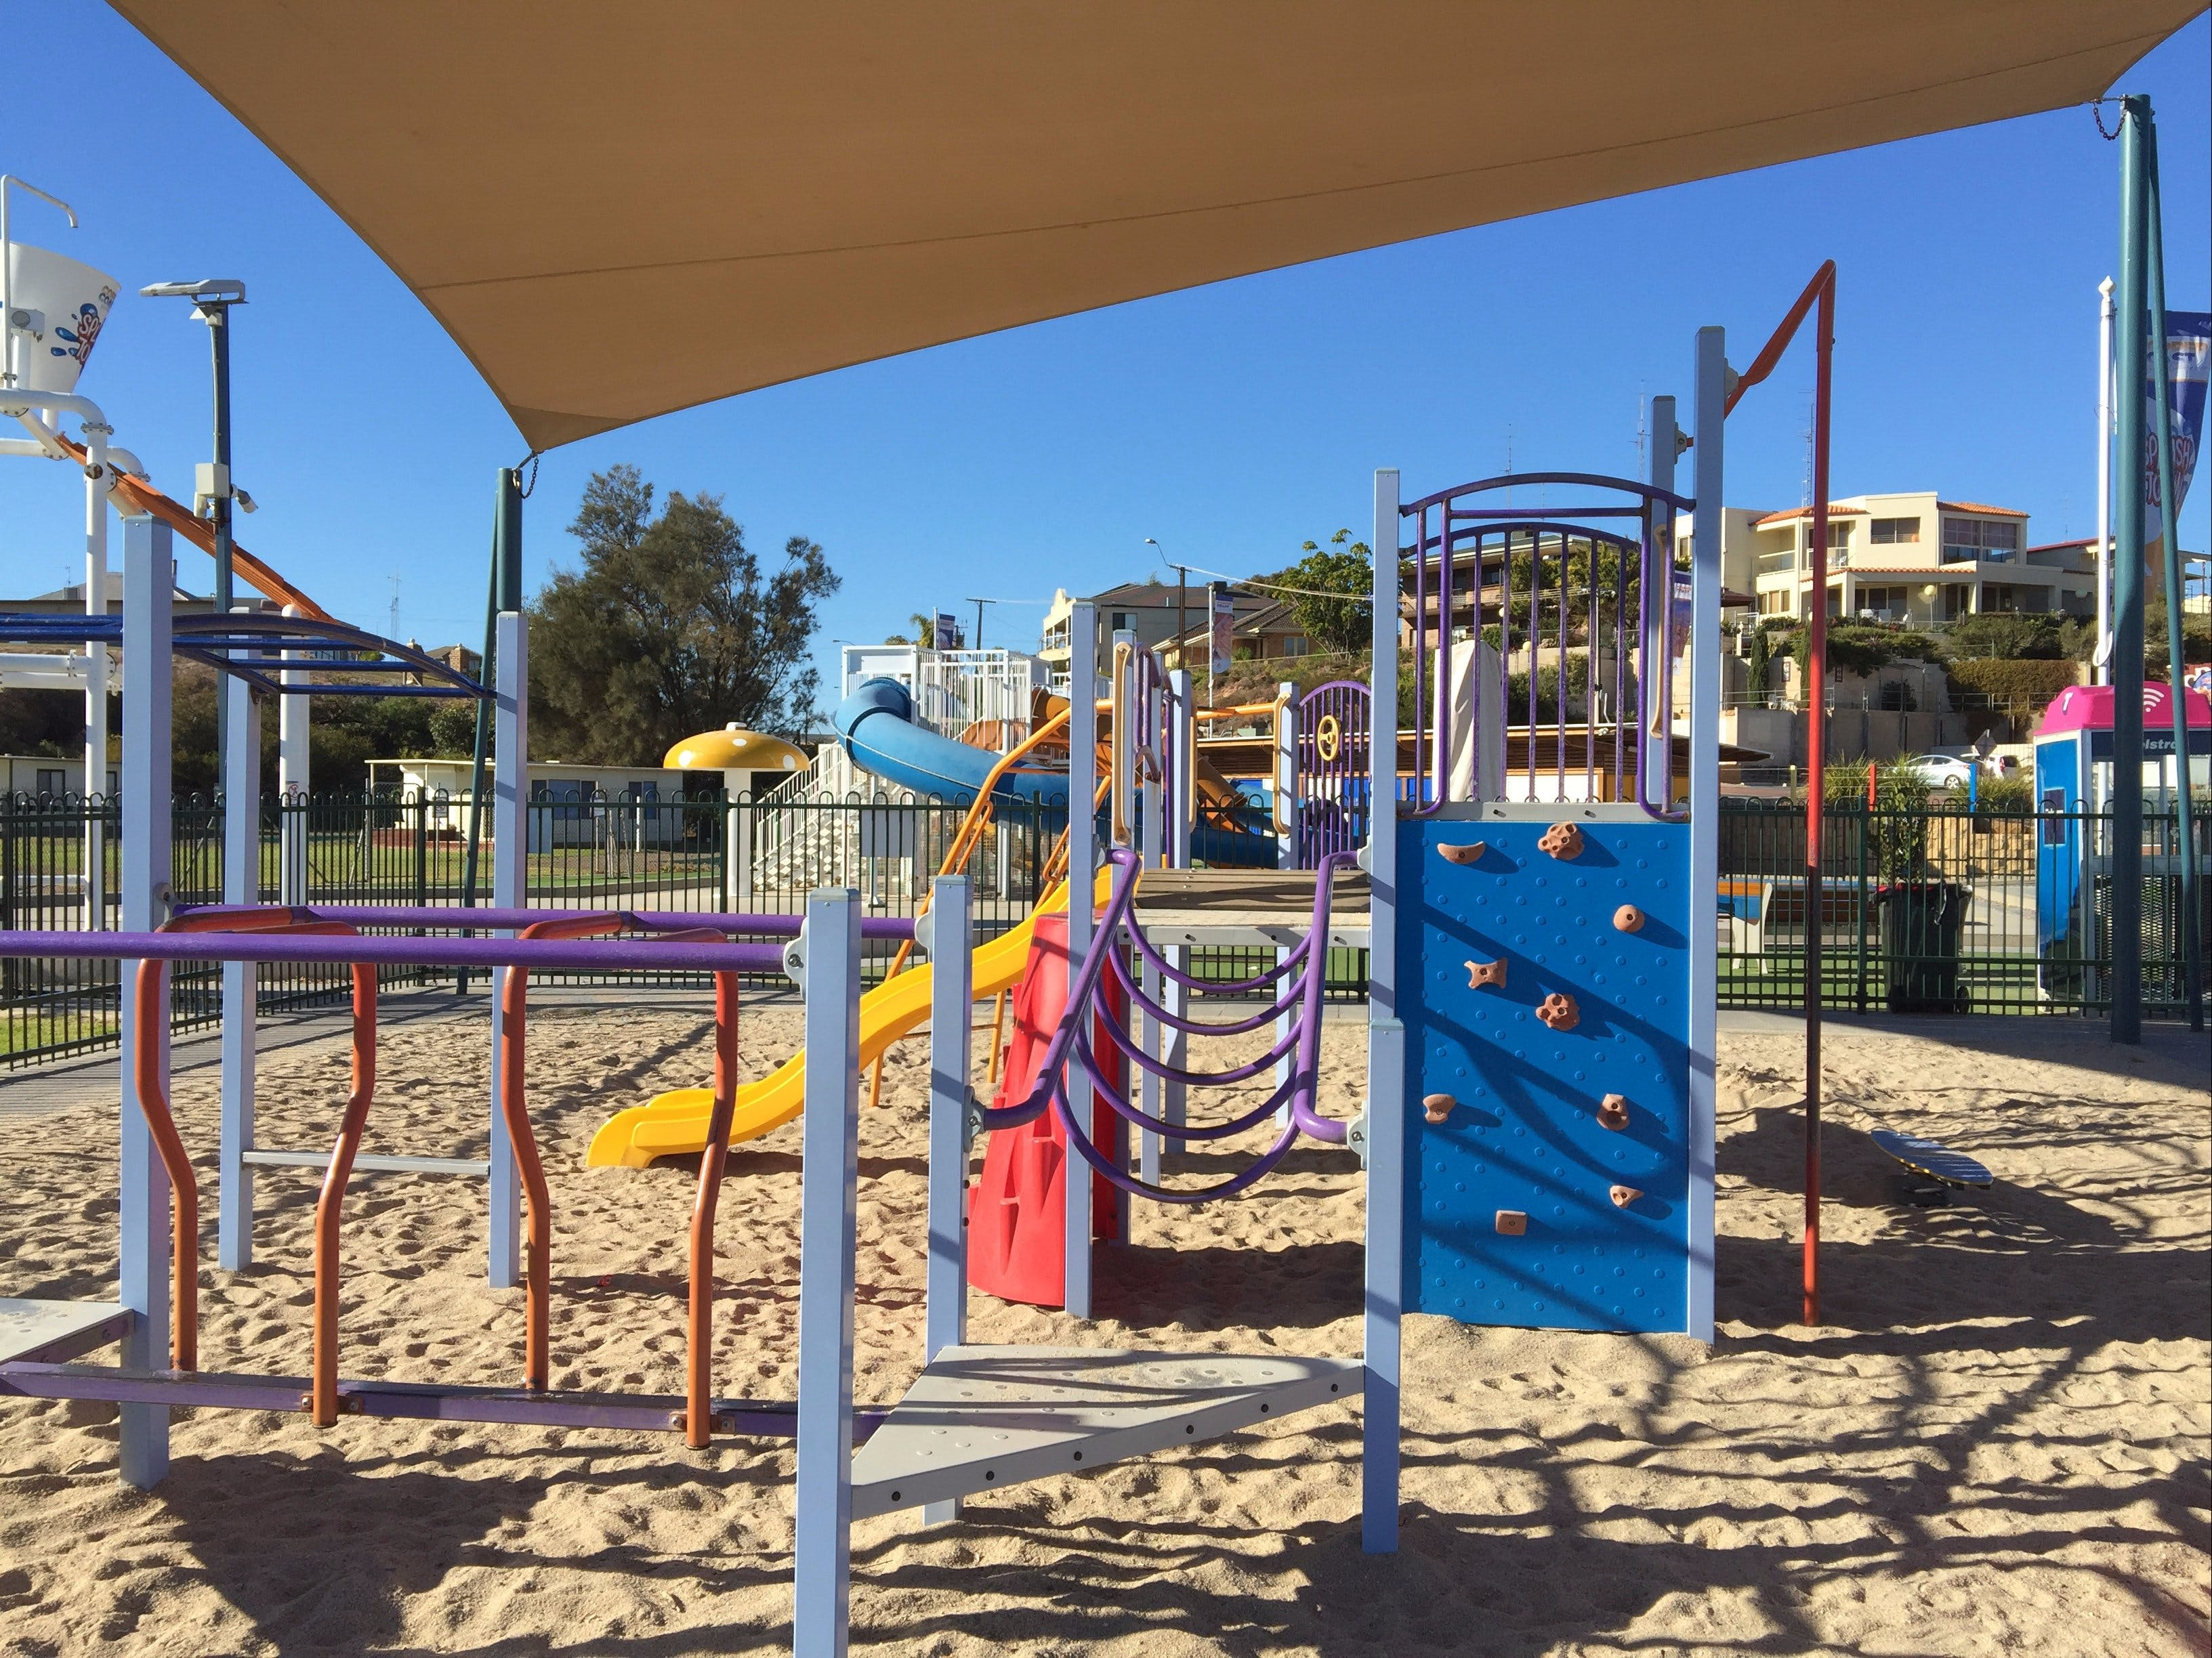 Moonta Bay Playground - Accommodation in Bendigo